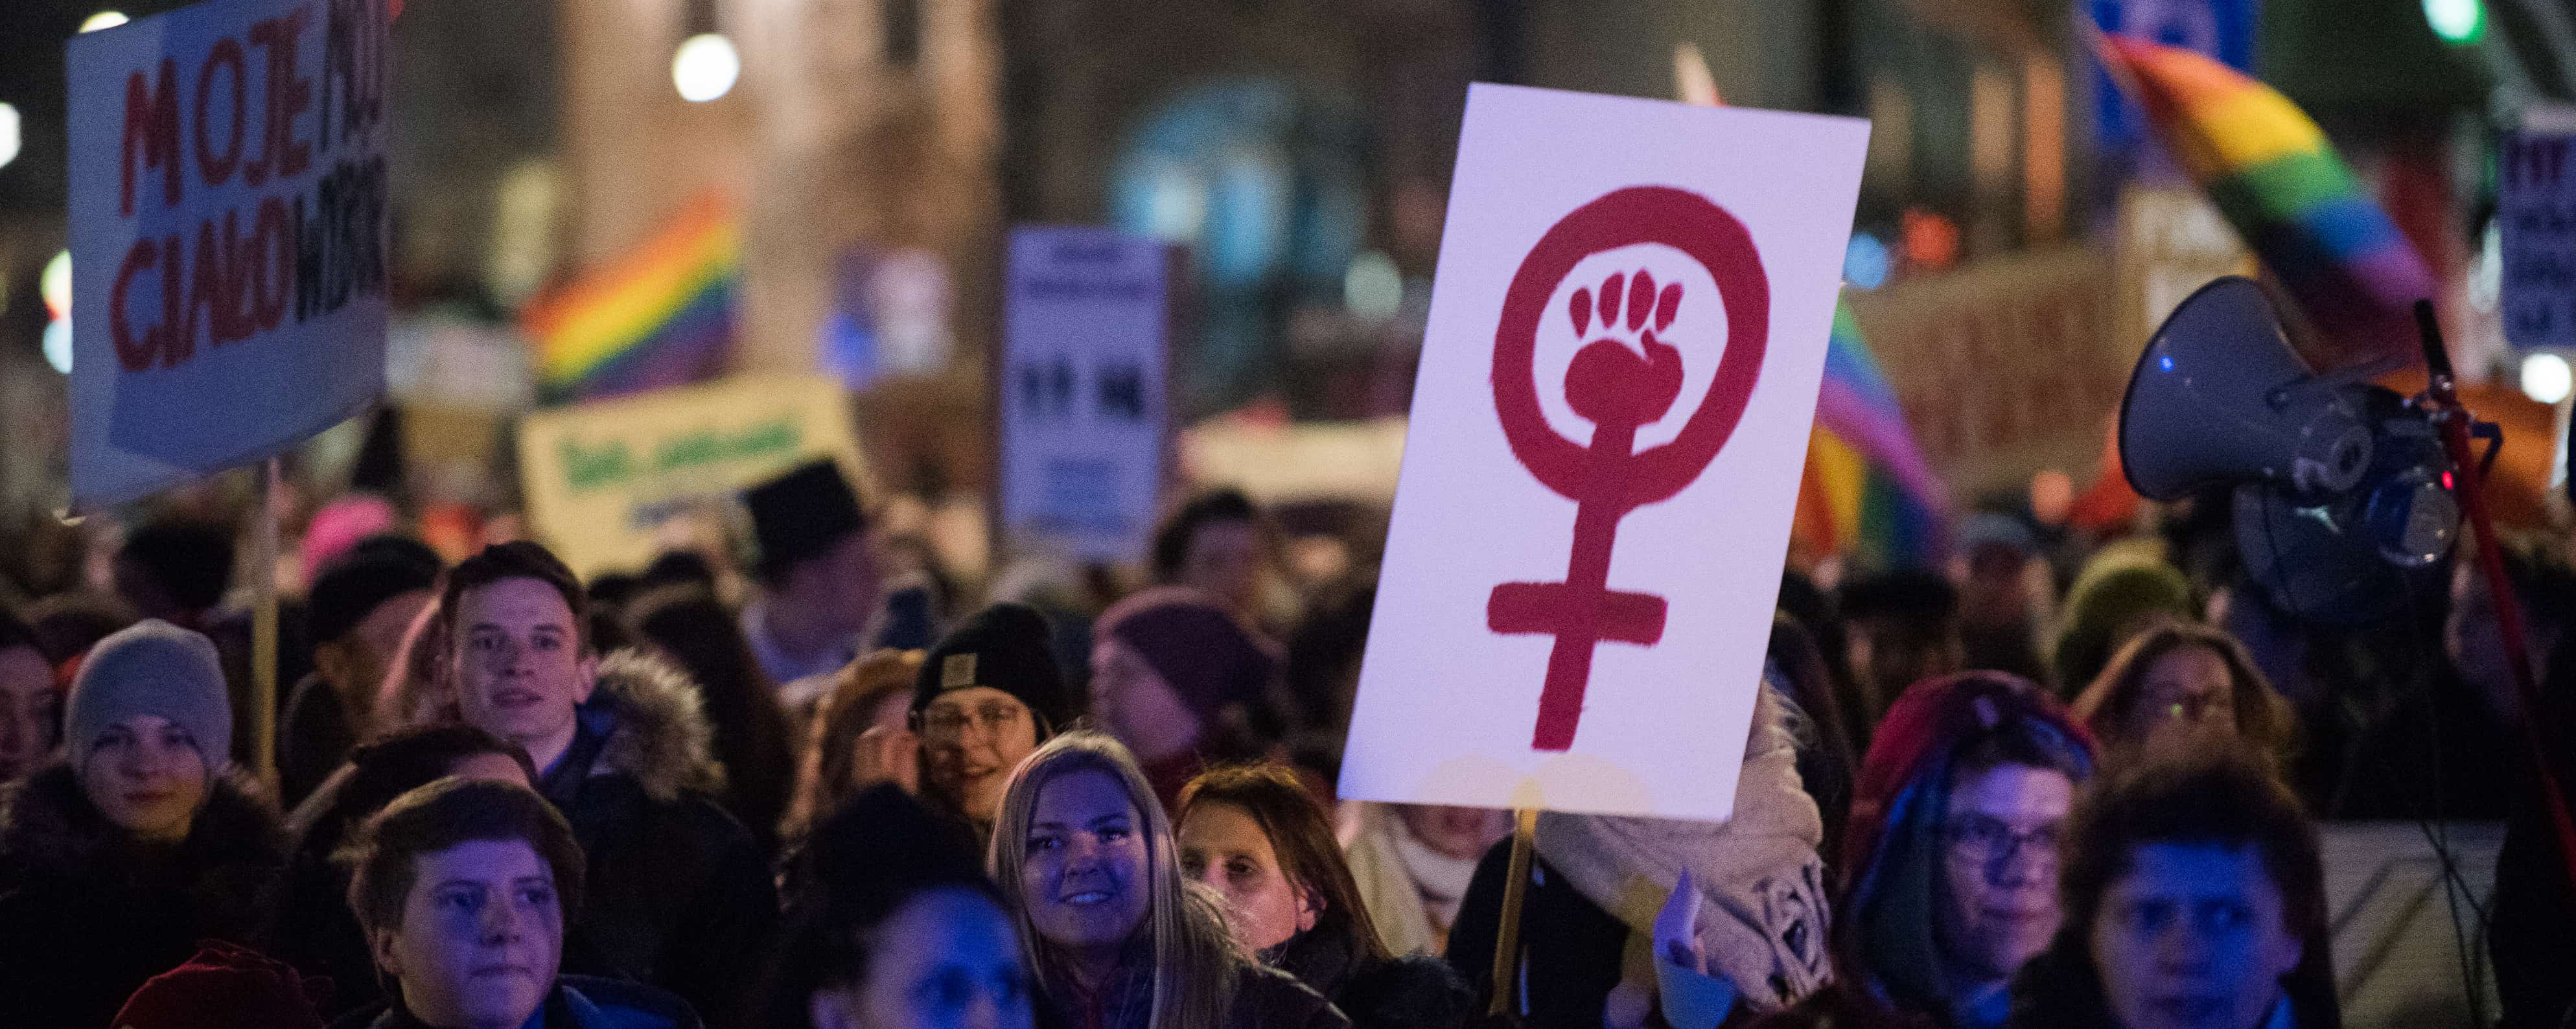 International Women's Day in Krakow. (Photo: Omar Marques/Getty)